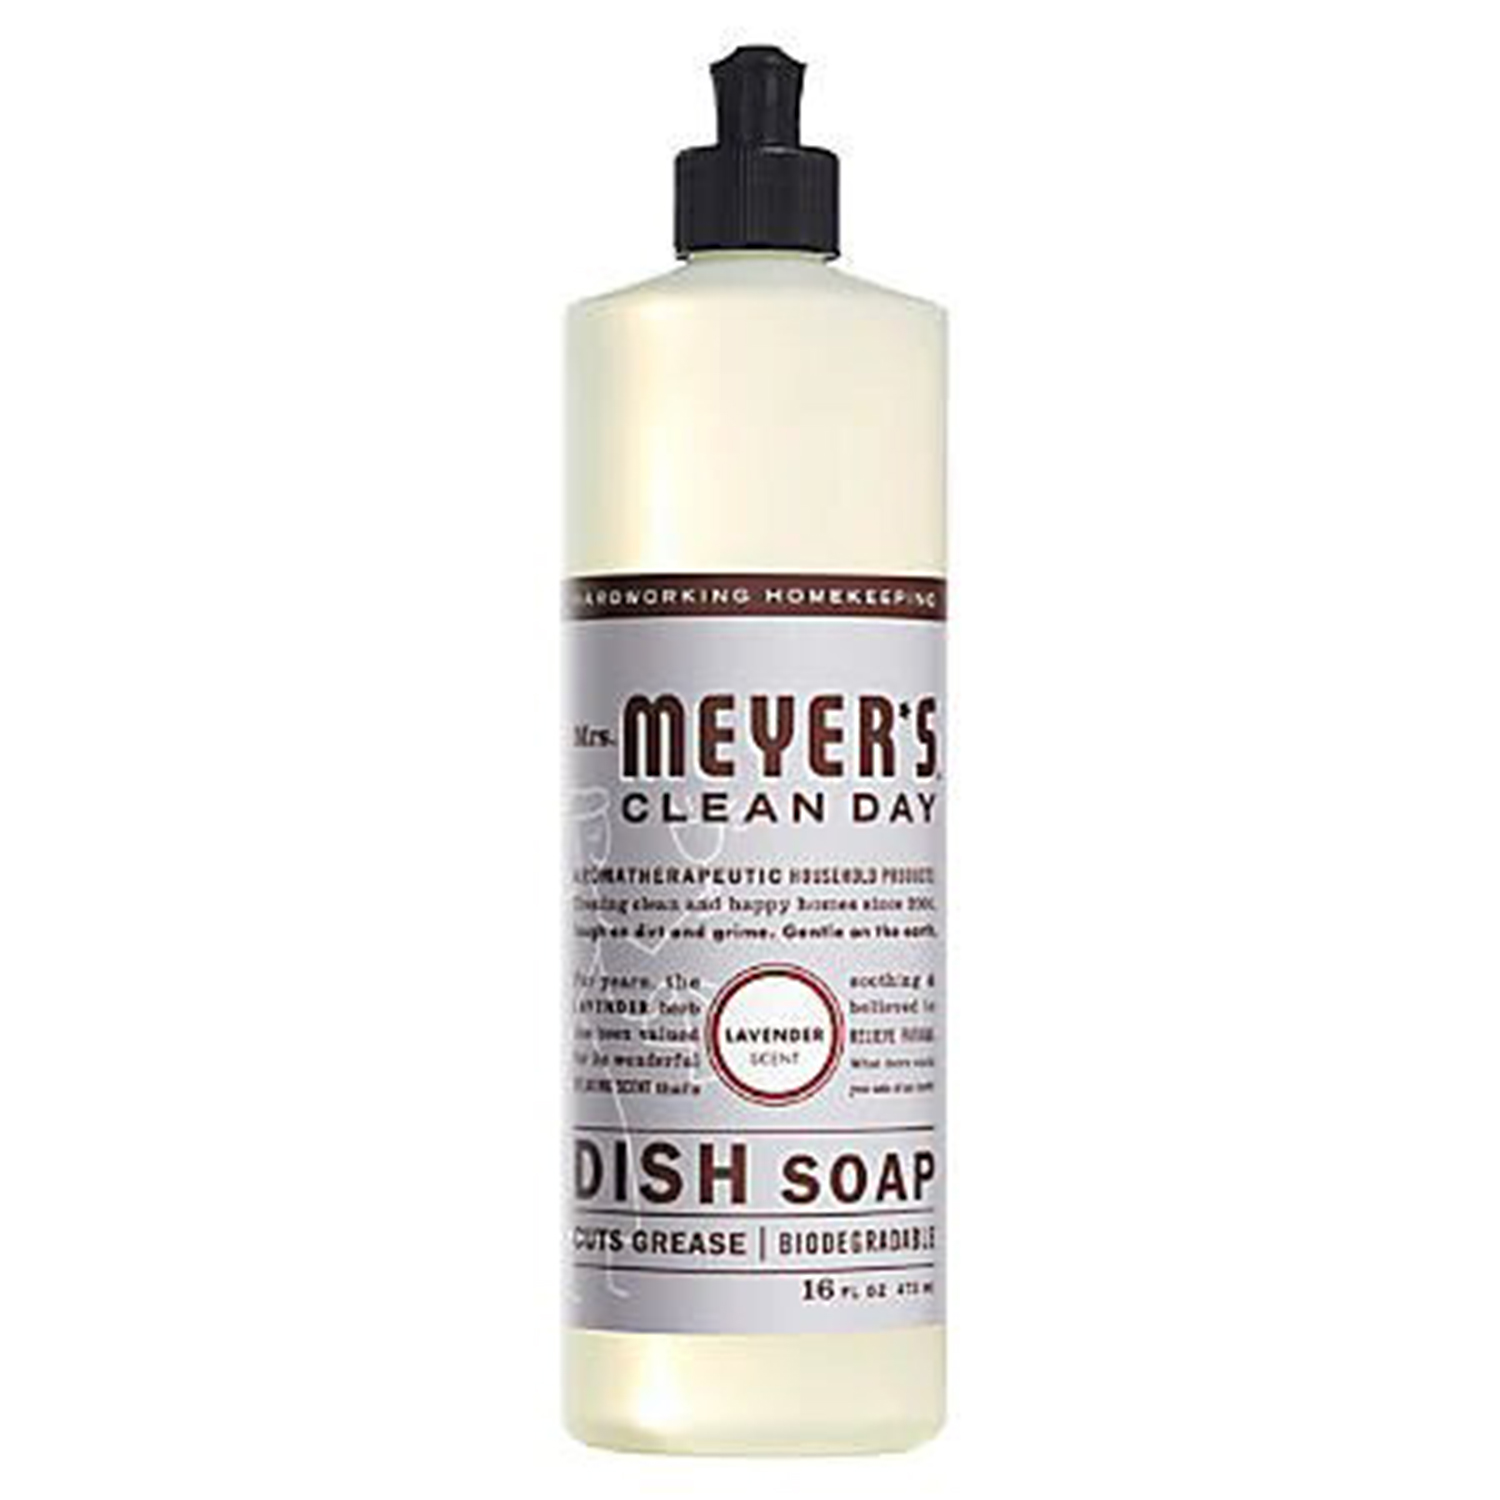 Mrs. Meyers Clean Day Dish Soap Lavender